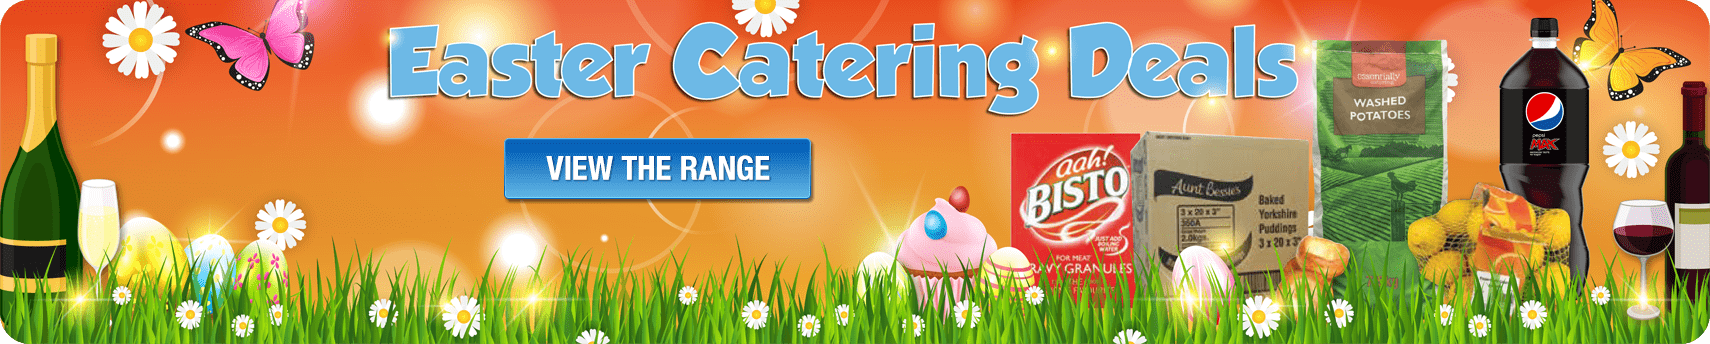 Easter Caterering Deals